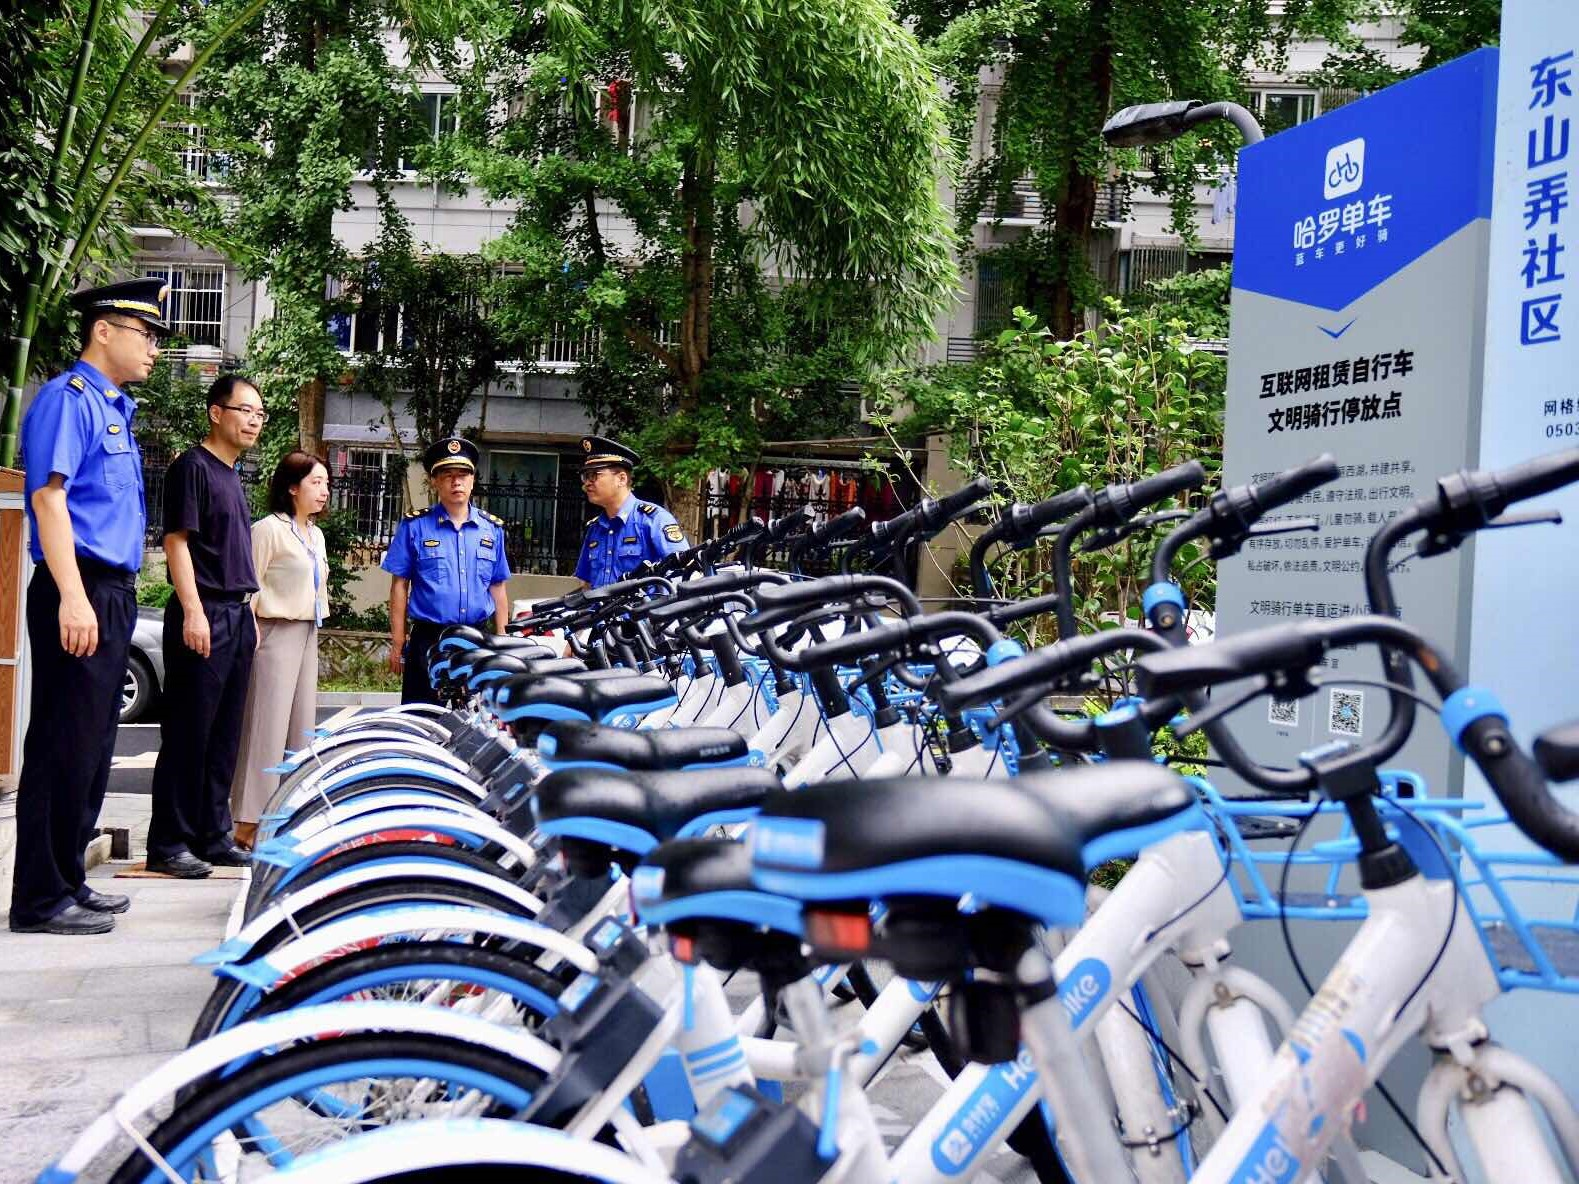 People looking at bicycles in Shandong province. Image credit: Hellobike official website.